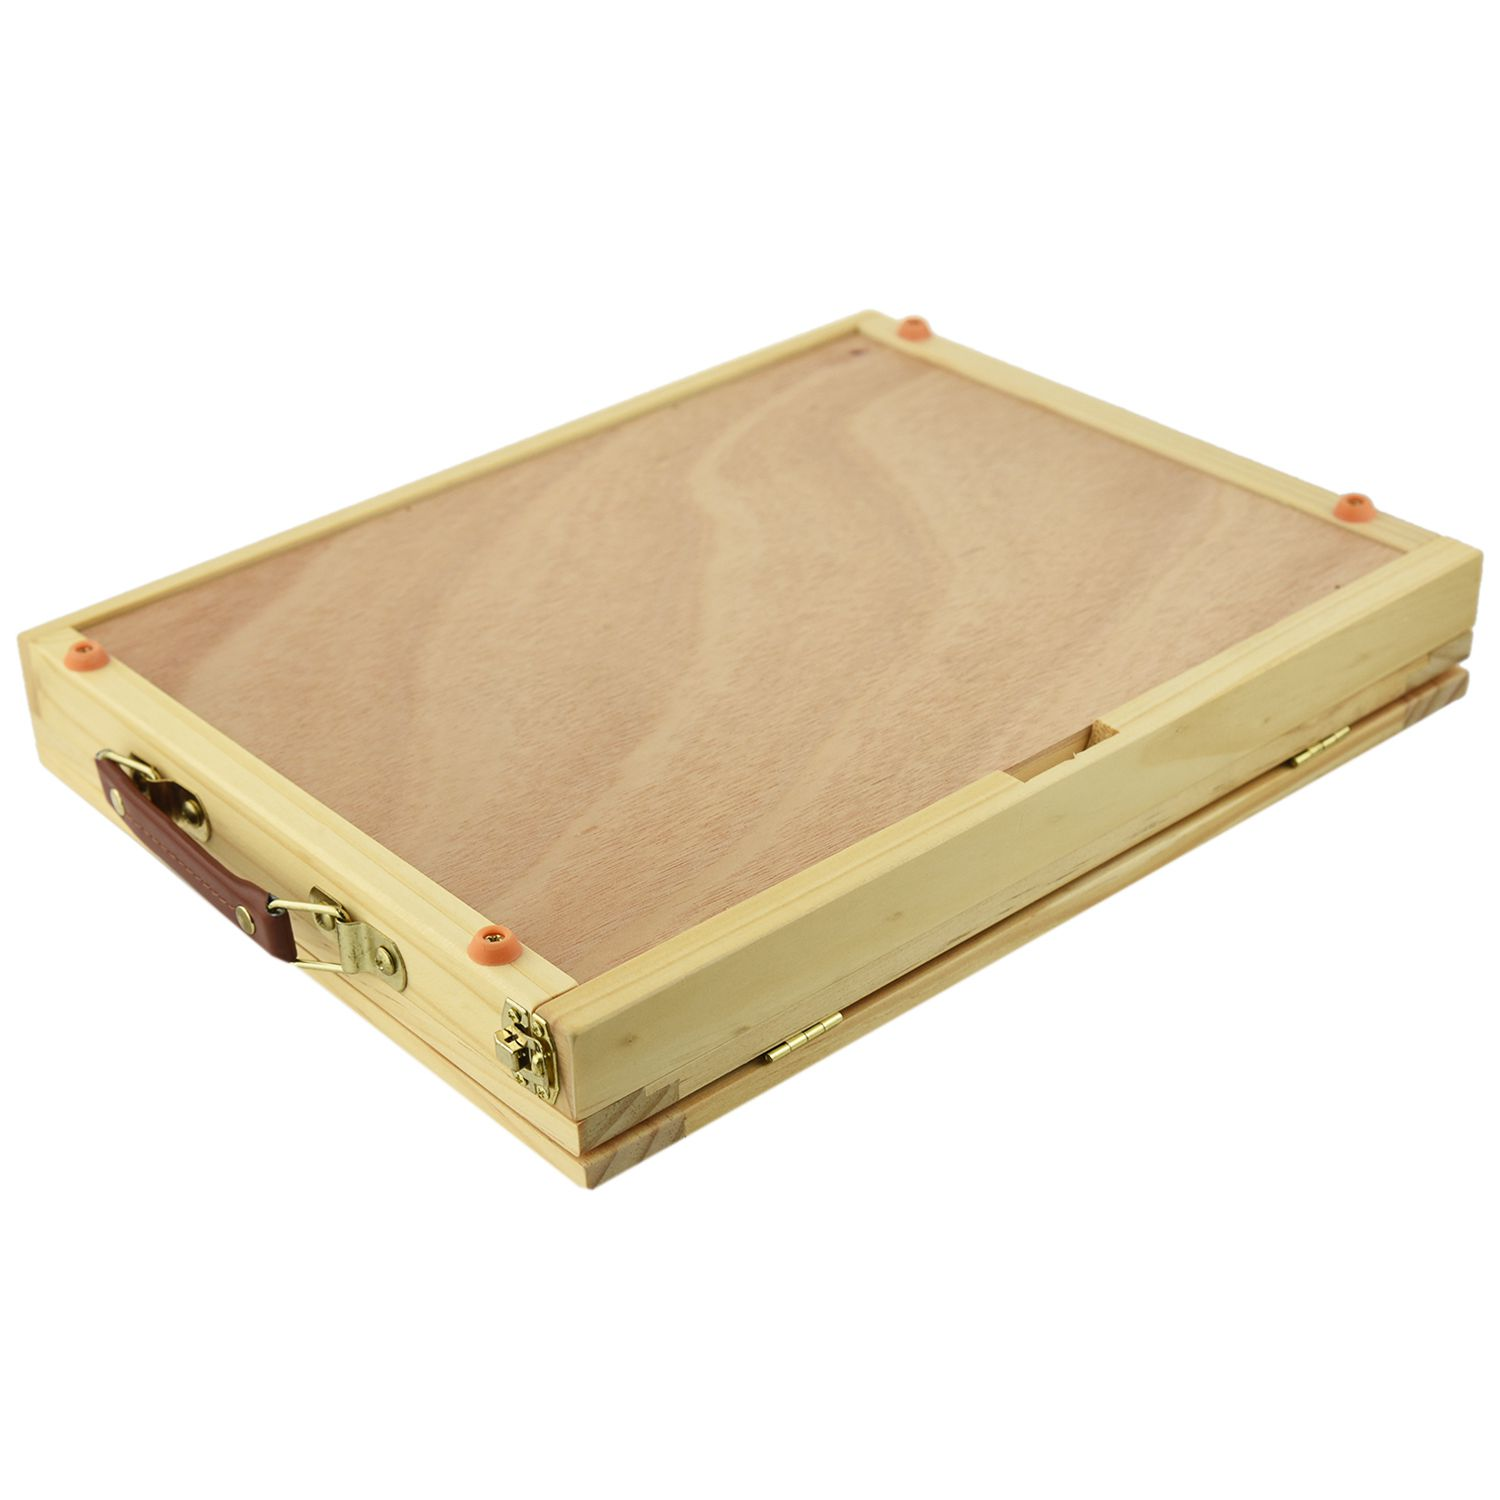 Artist Wooden Table Box Easel for Painting with Drawer Box Portable Desktop Suitcase Painting Hardware Art Supplies цены